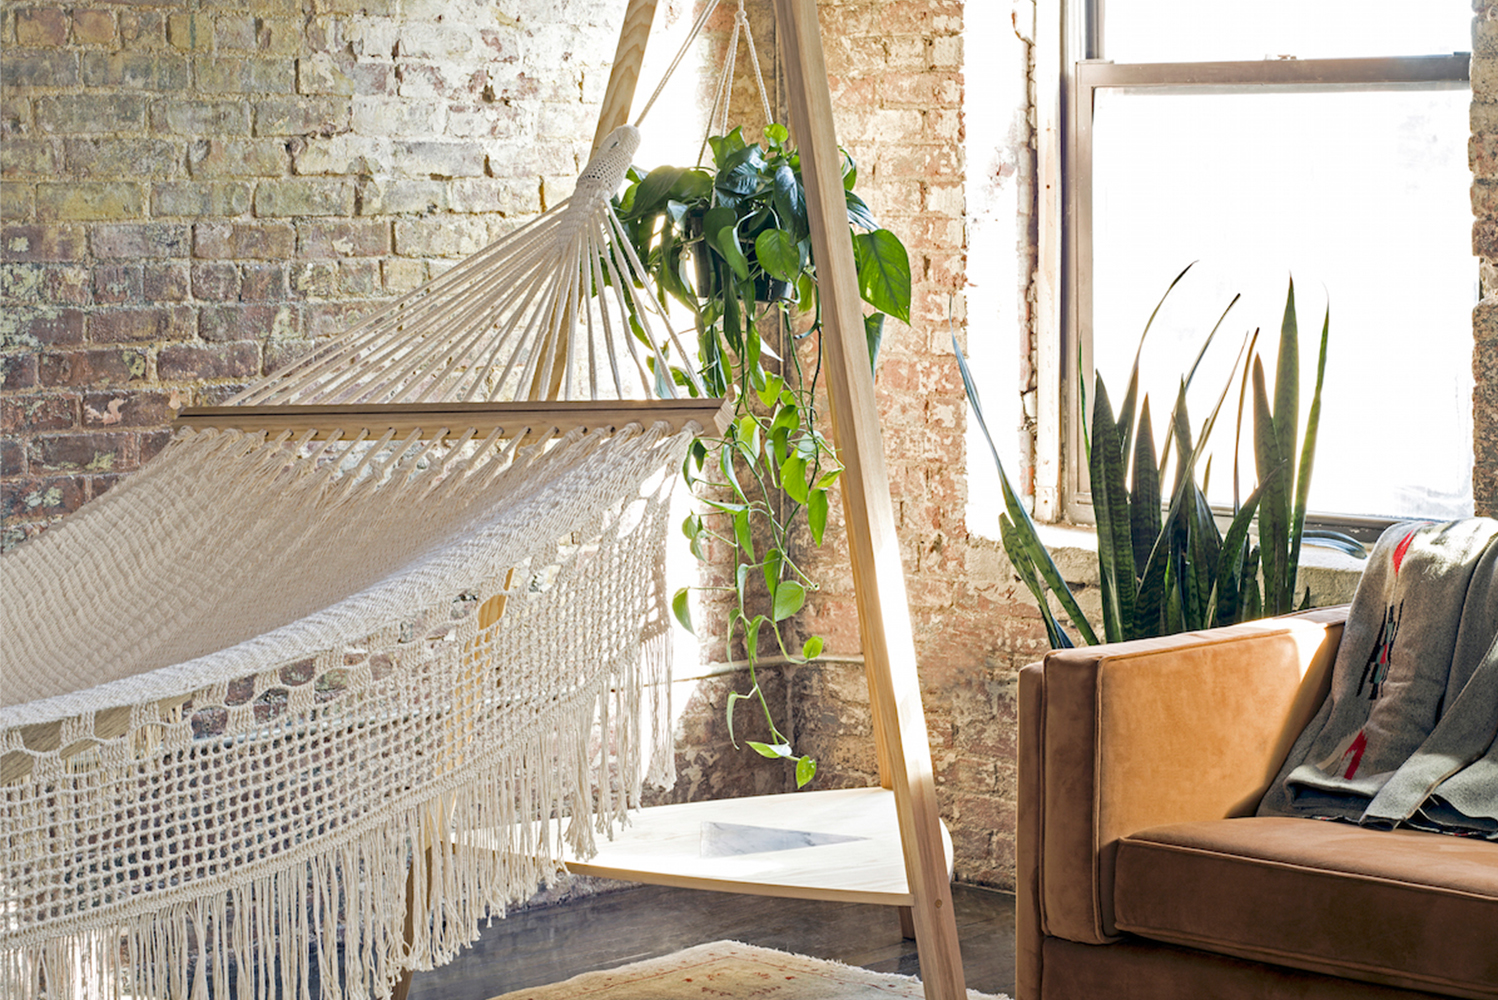 Brooklyn-based furniture design collective Pouch launched a collection of indoor hammocks and hanging chairs.